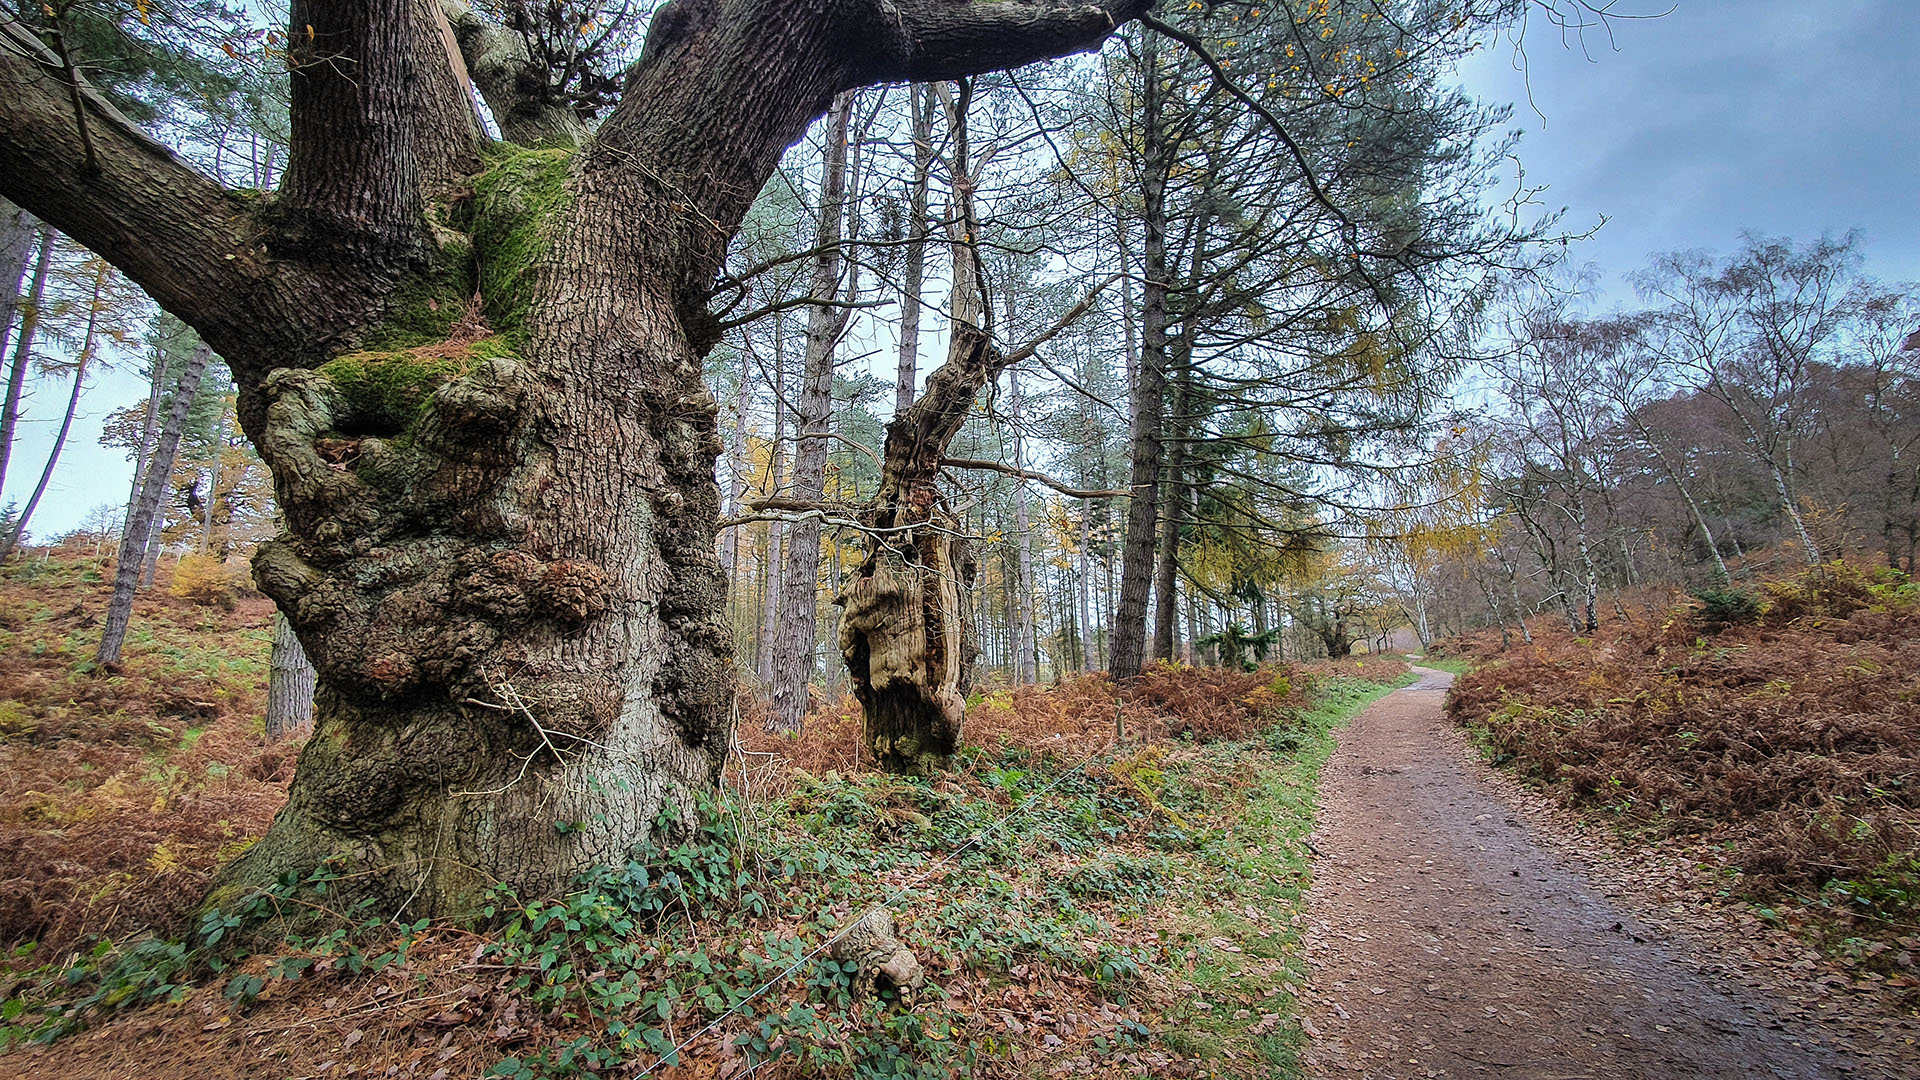 Ancient trees on the Sherbrook Trail between the Stepping Stones and Beggar's Hill